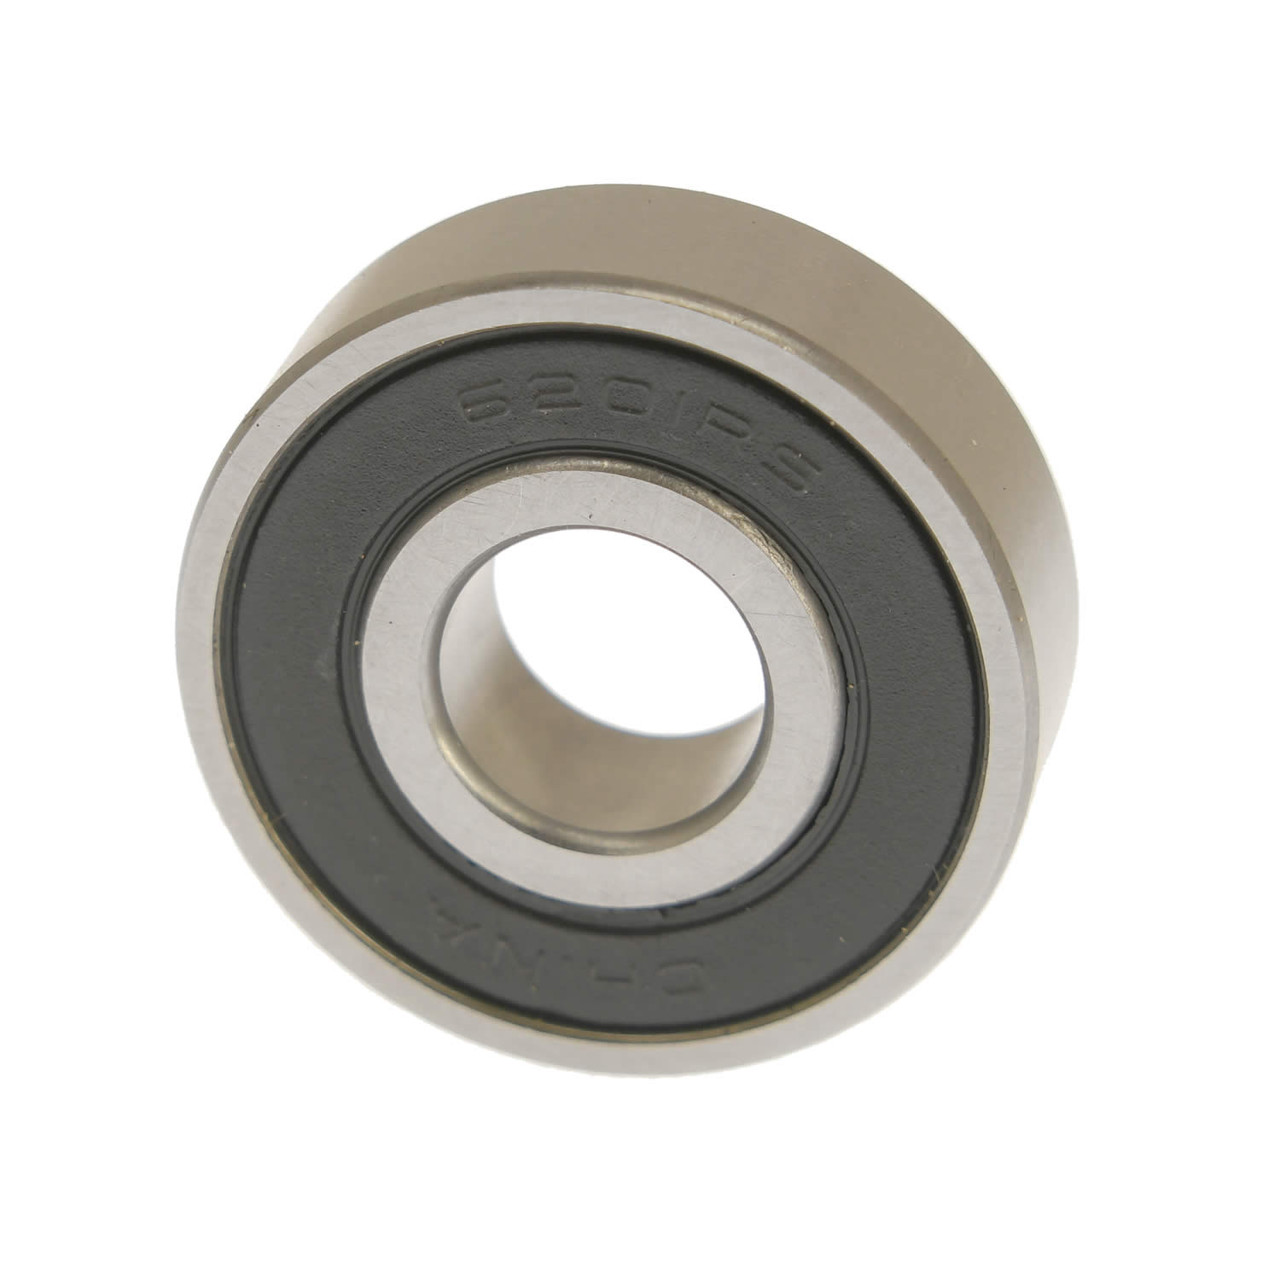 Blazer 200R Outer Front Wheel Bearing, 6201